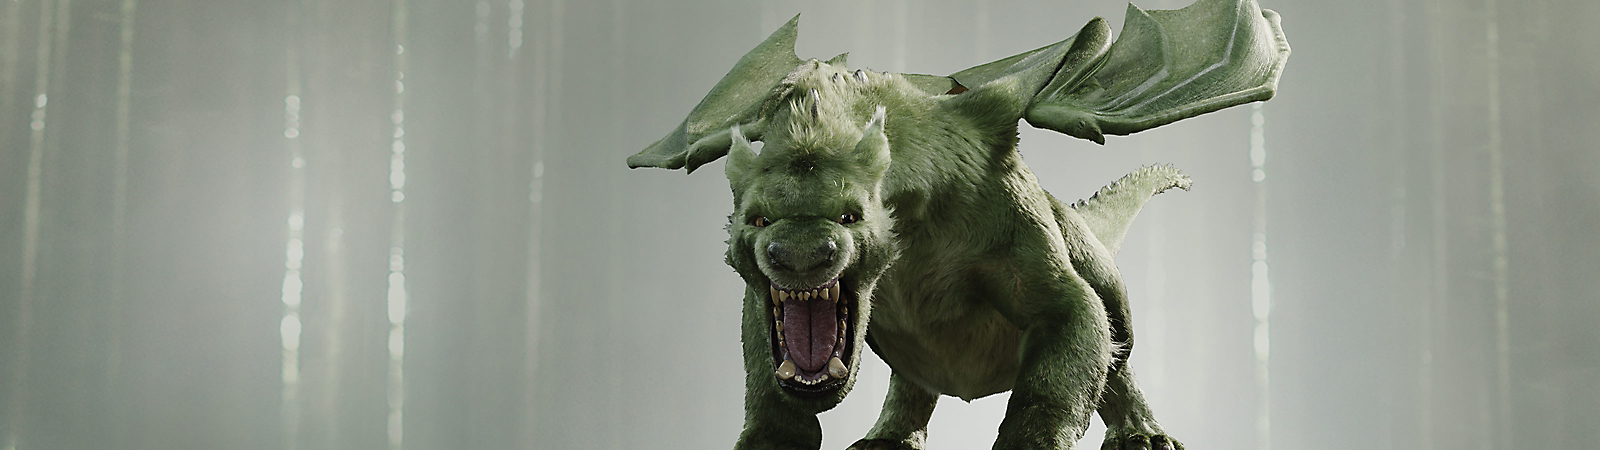 Background image of Pete's Dragon